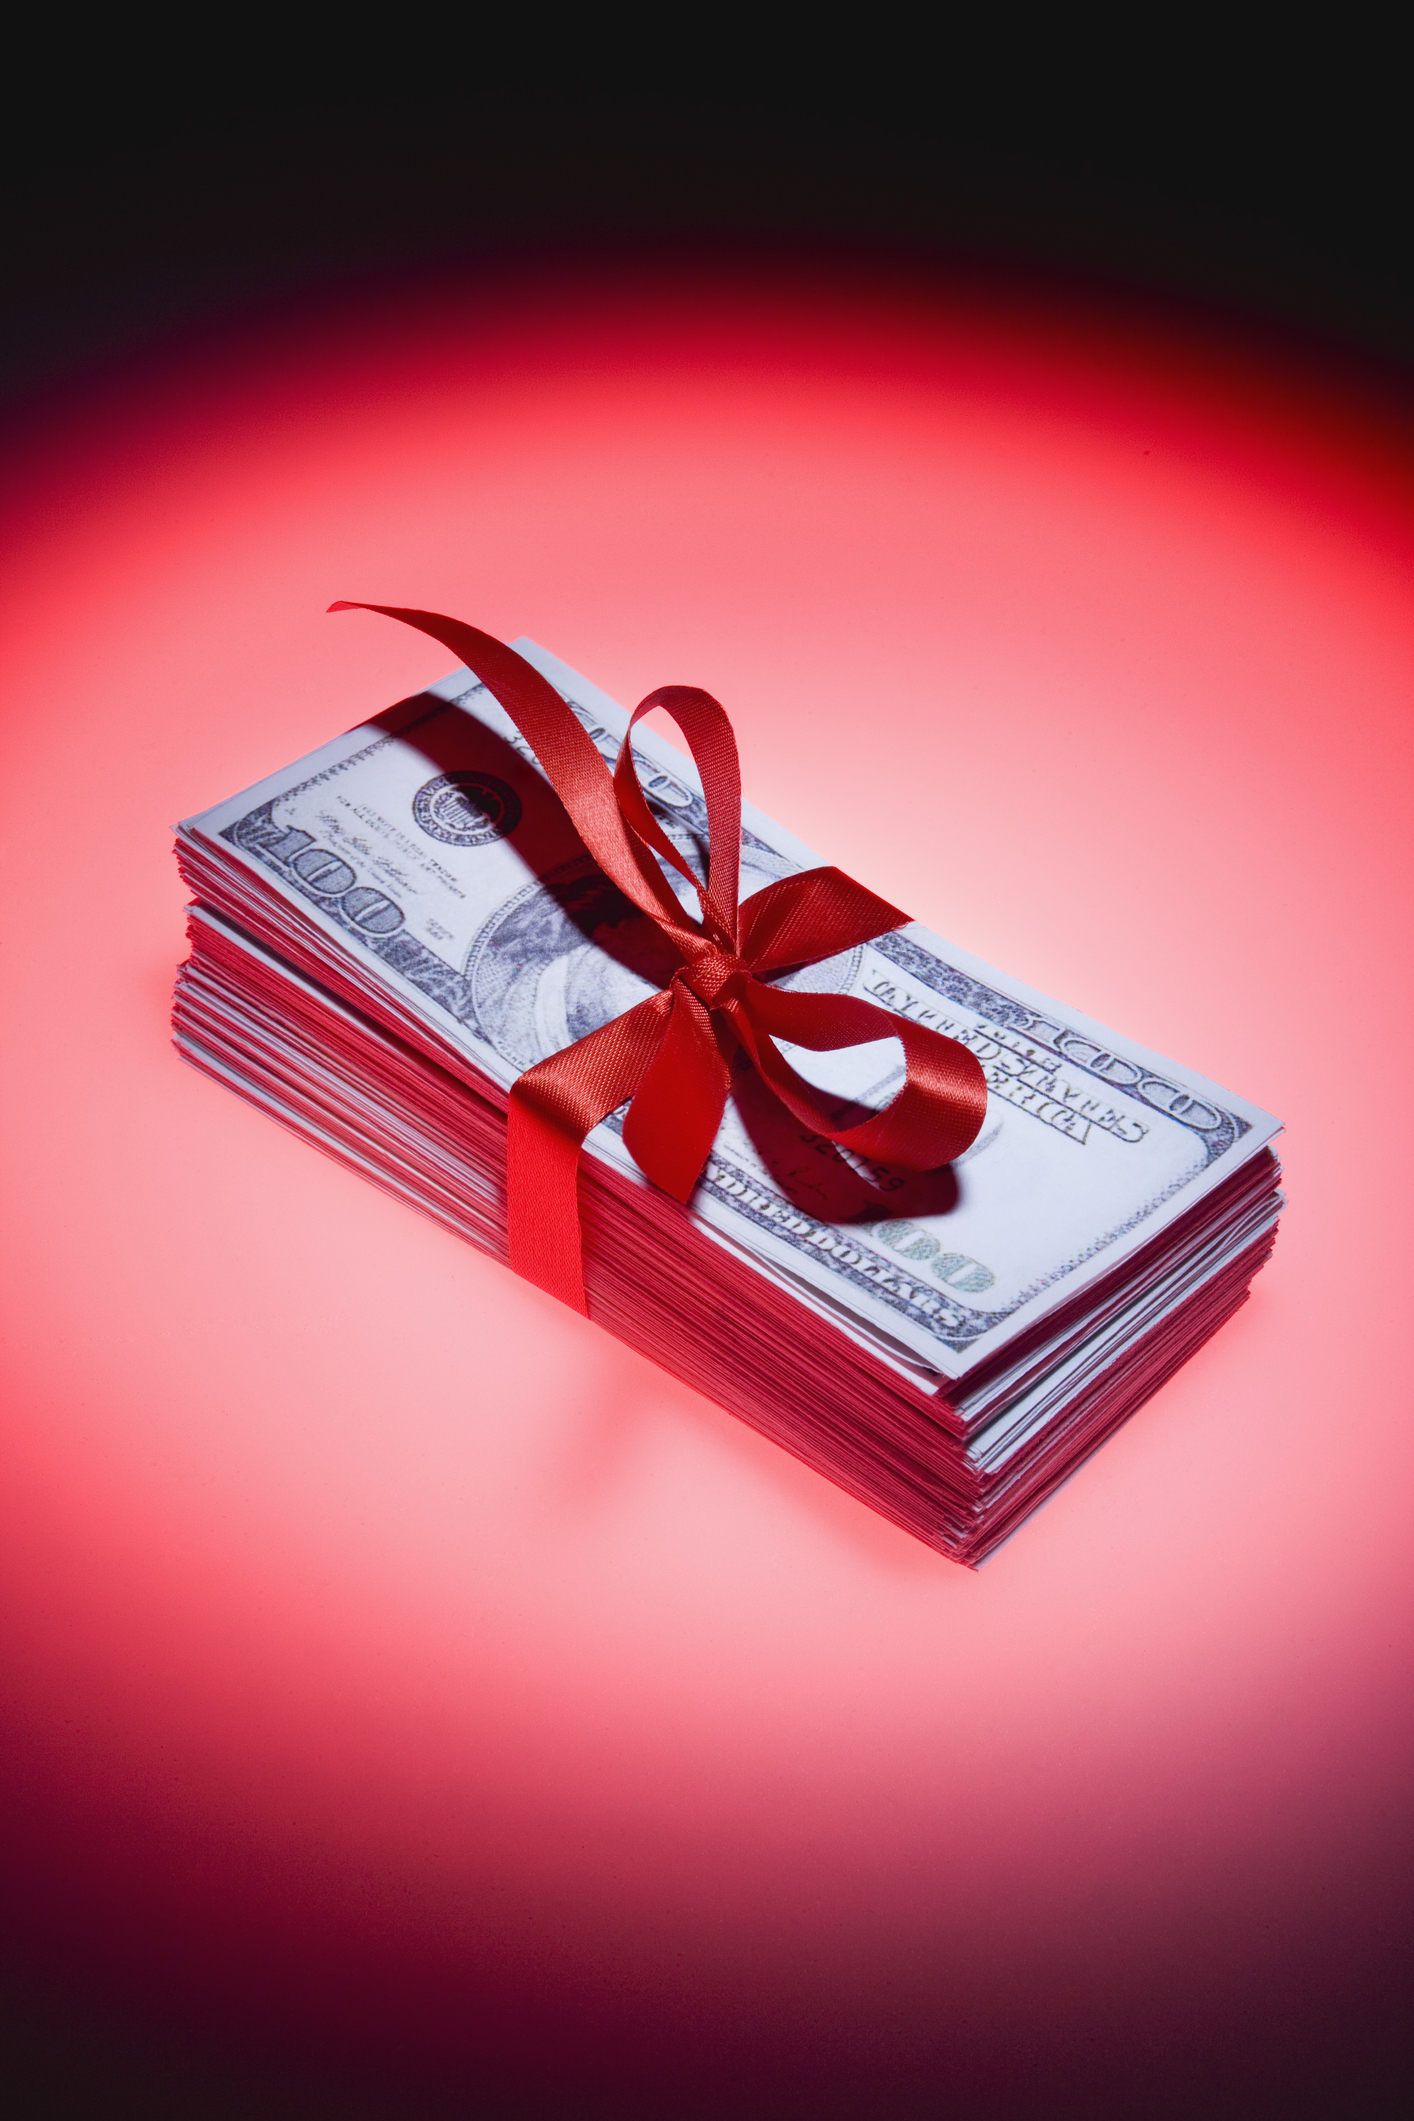 financial gifts can improve well-being